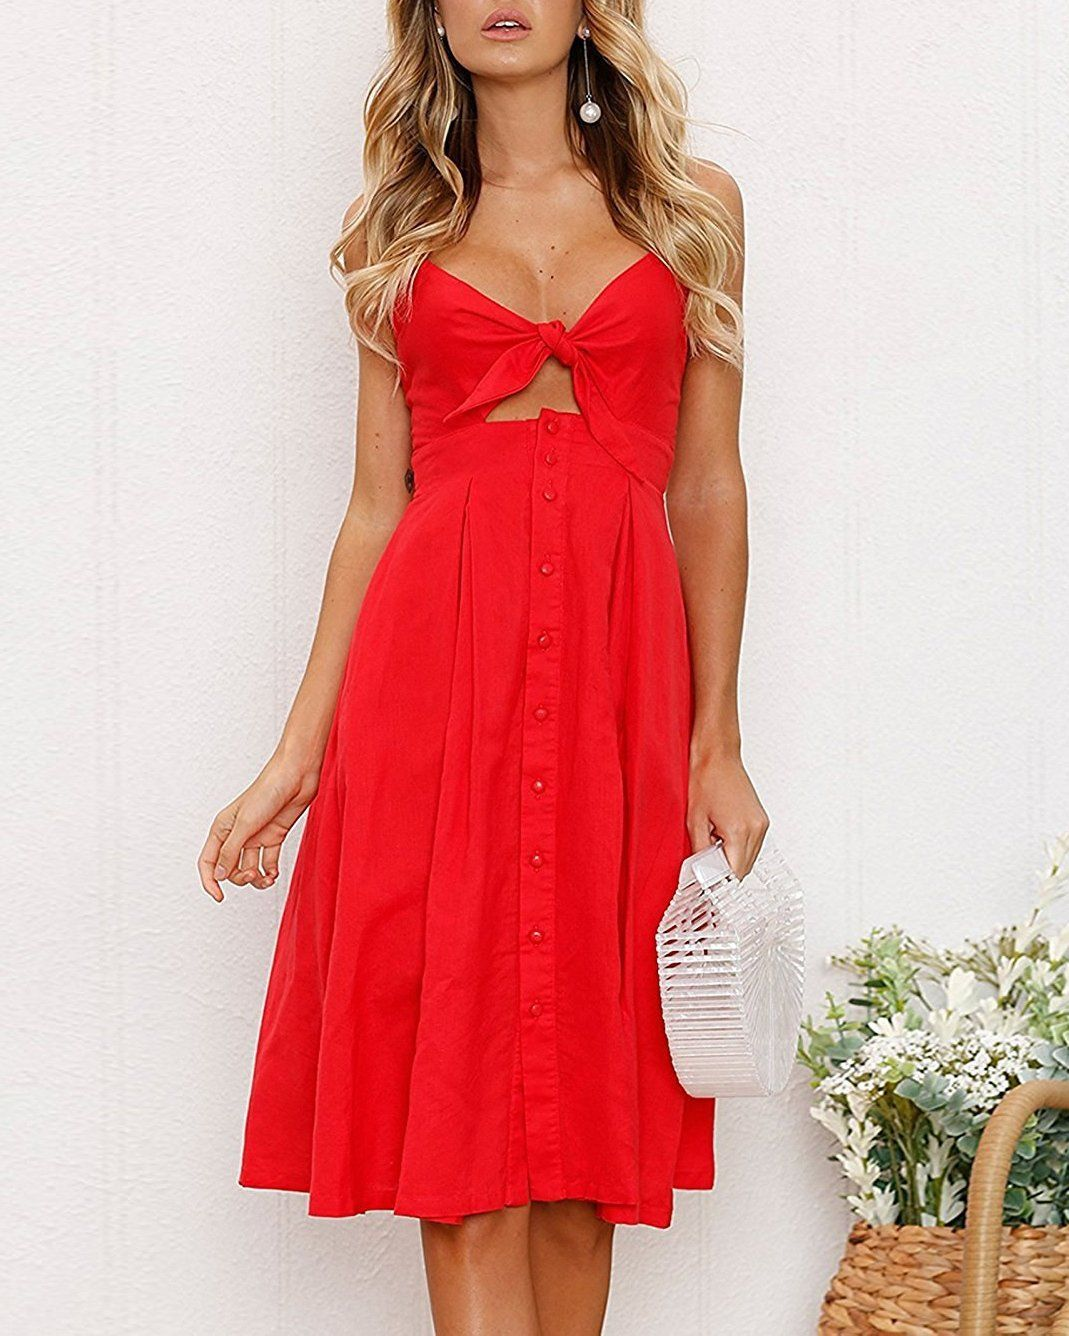 Over the rainbow red cut out dress dresses flirtyfull